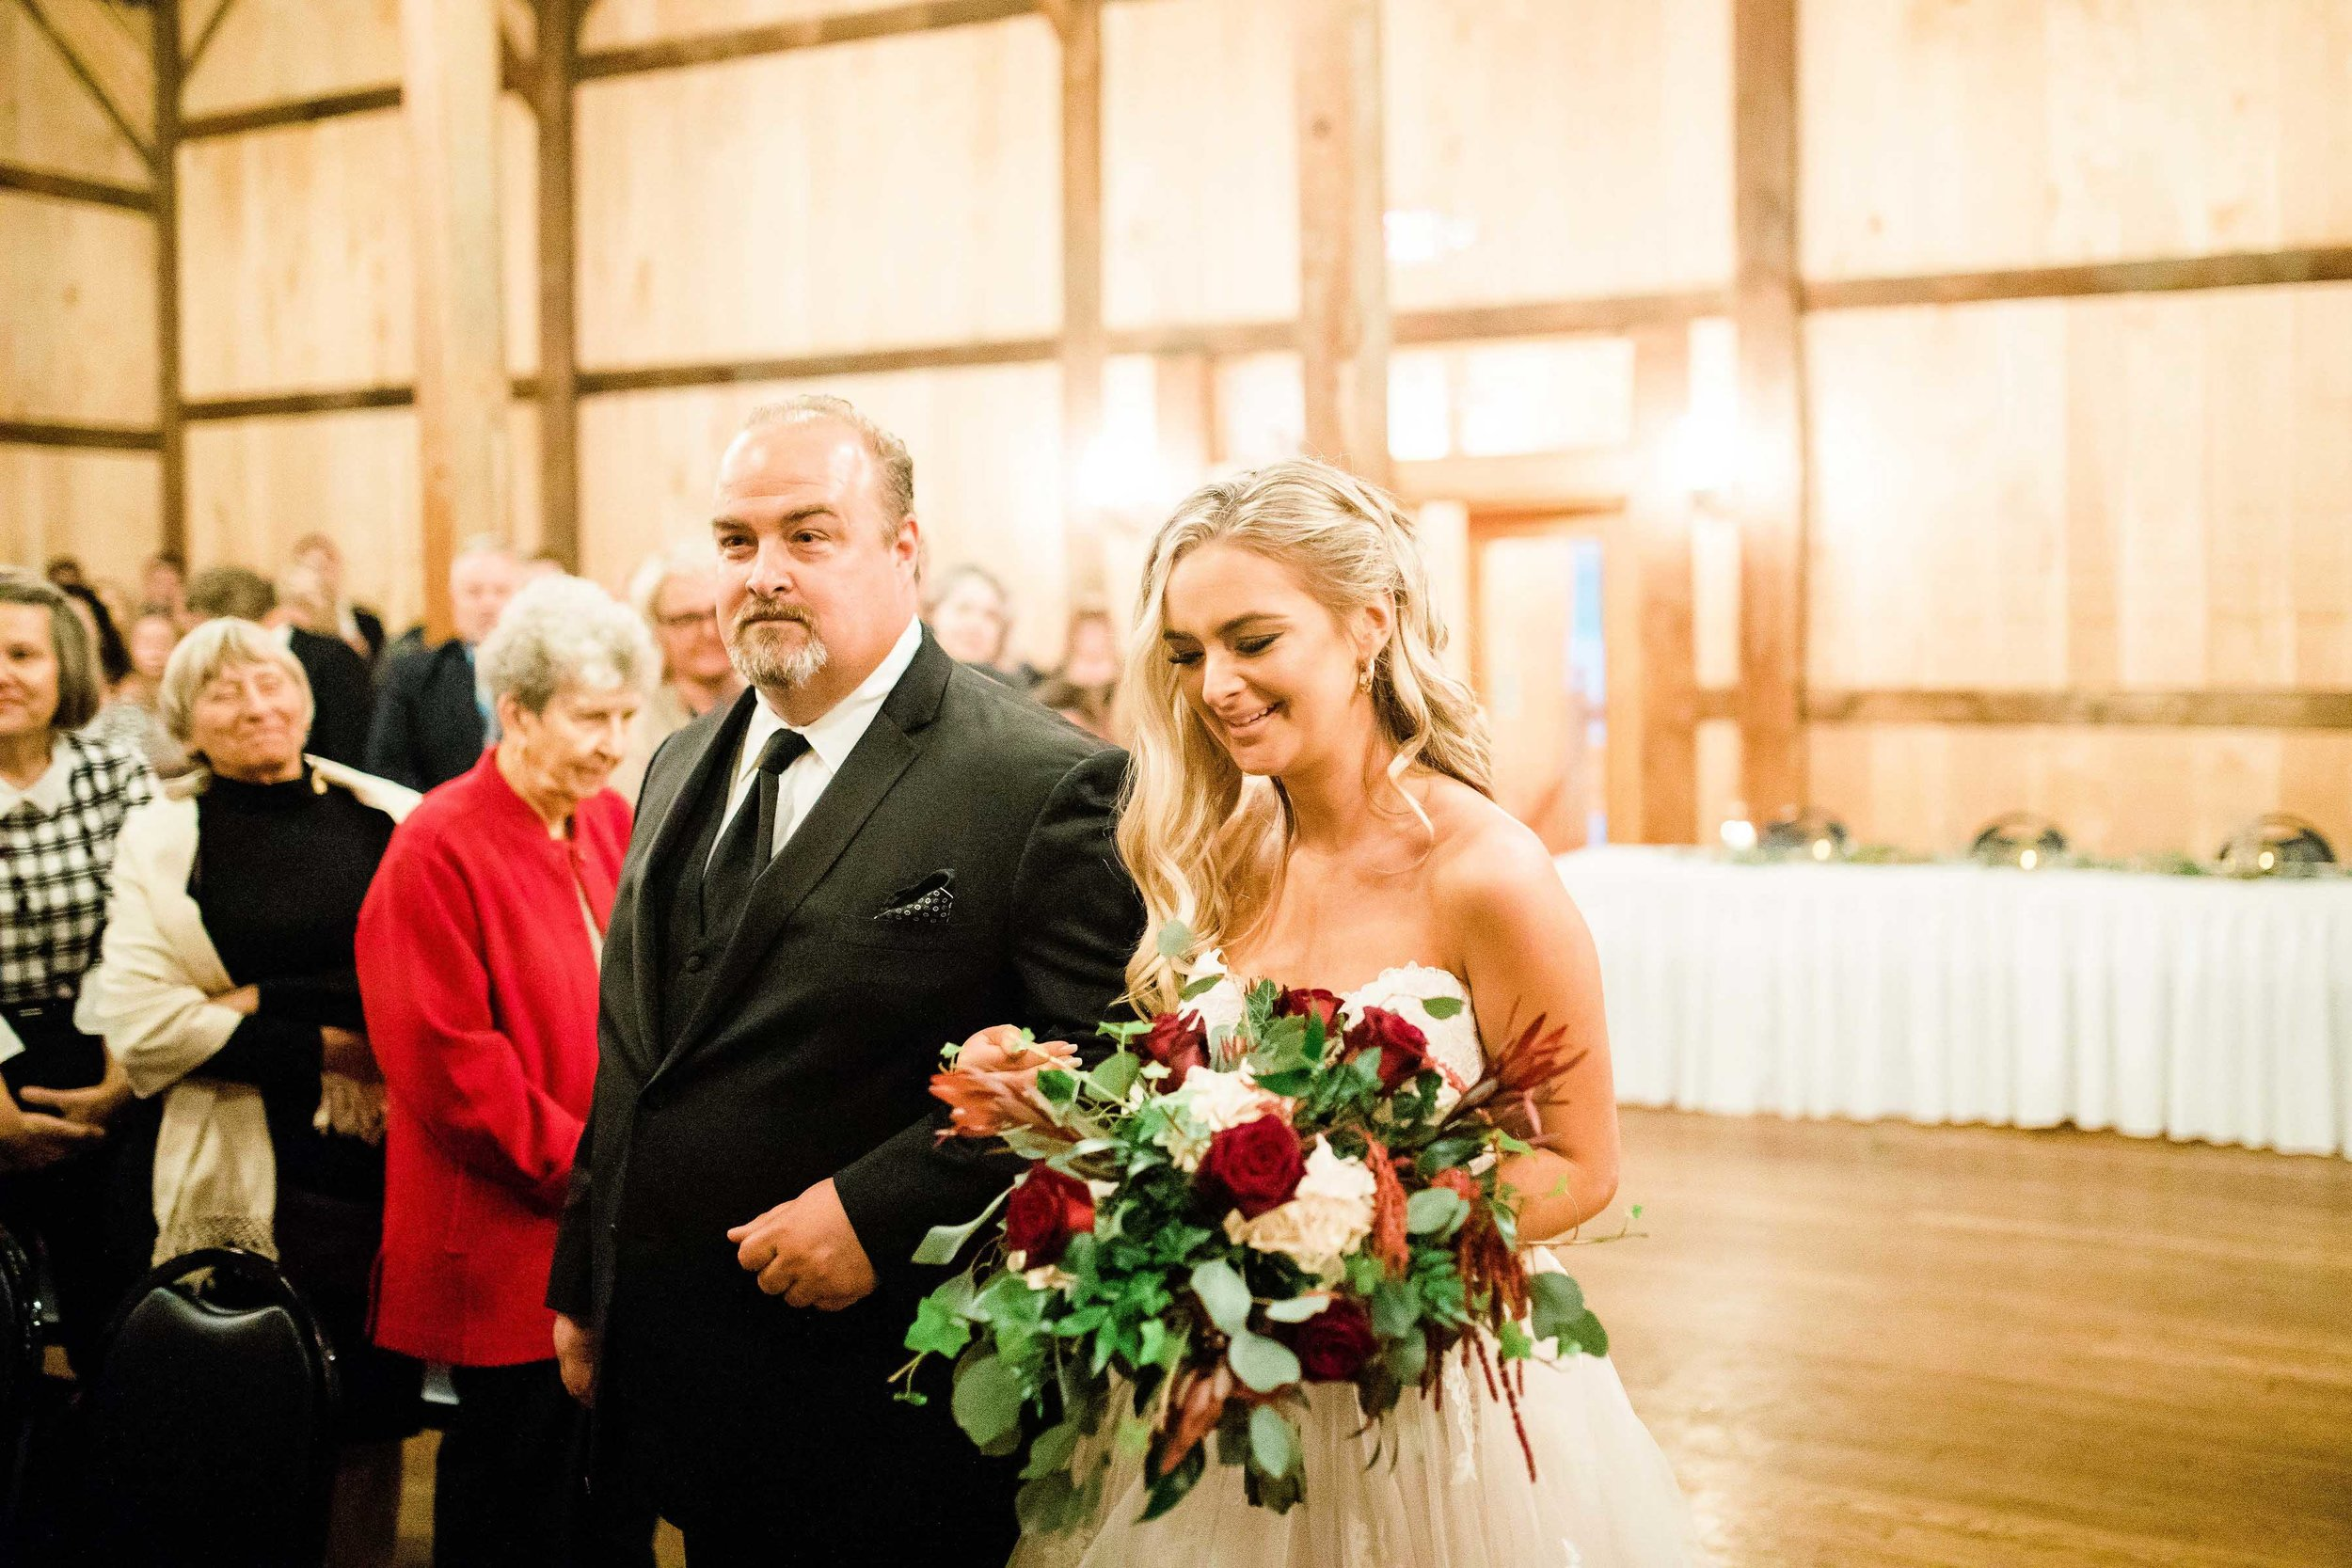 the heartland barn wedding ceremony-1.jpg